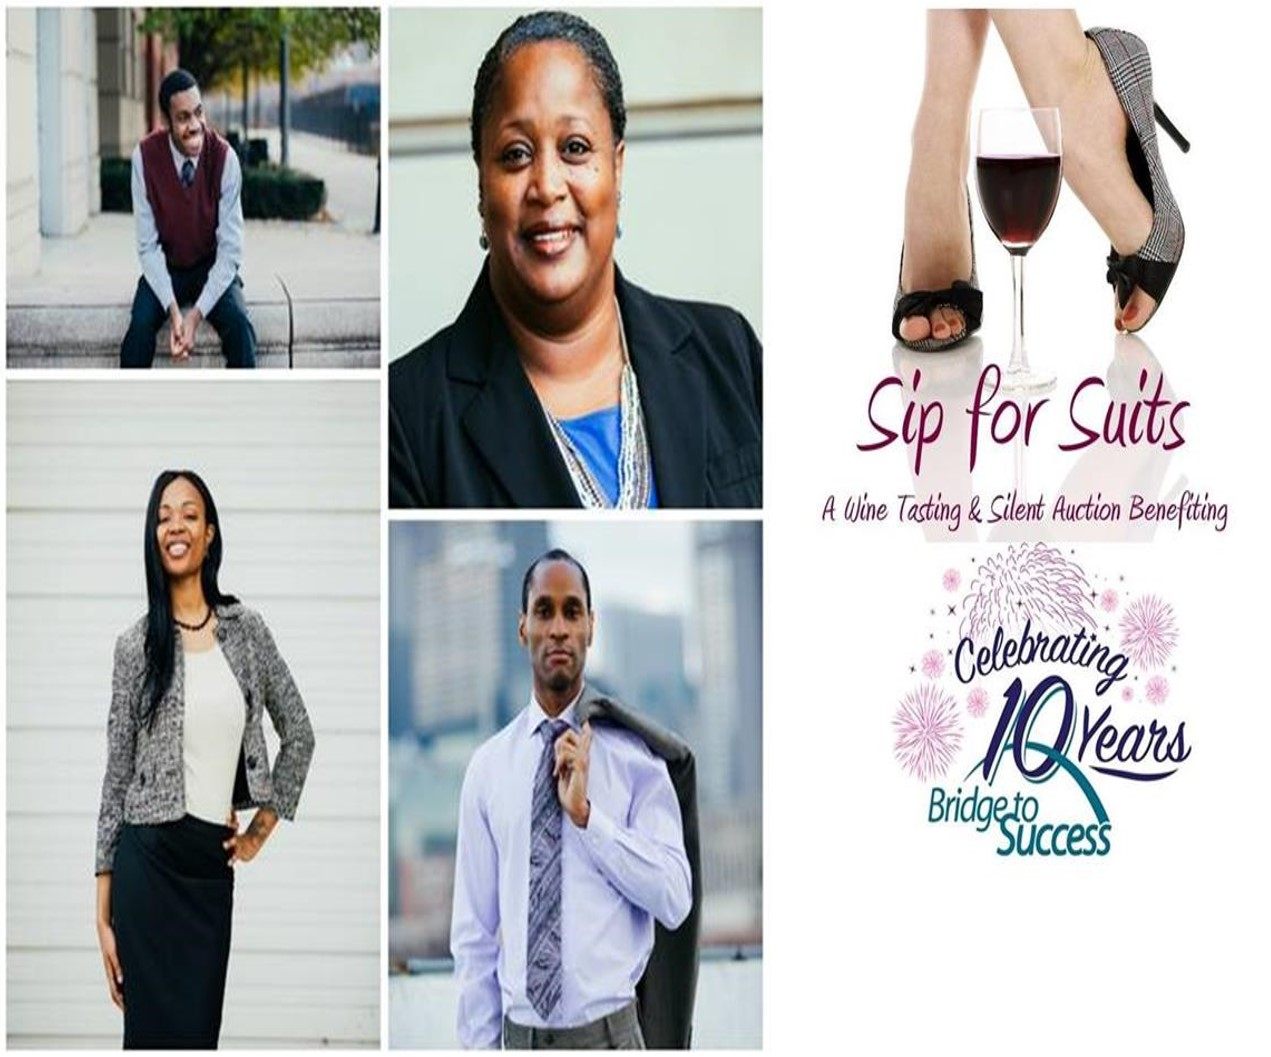 Faces of Sip For Suits